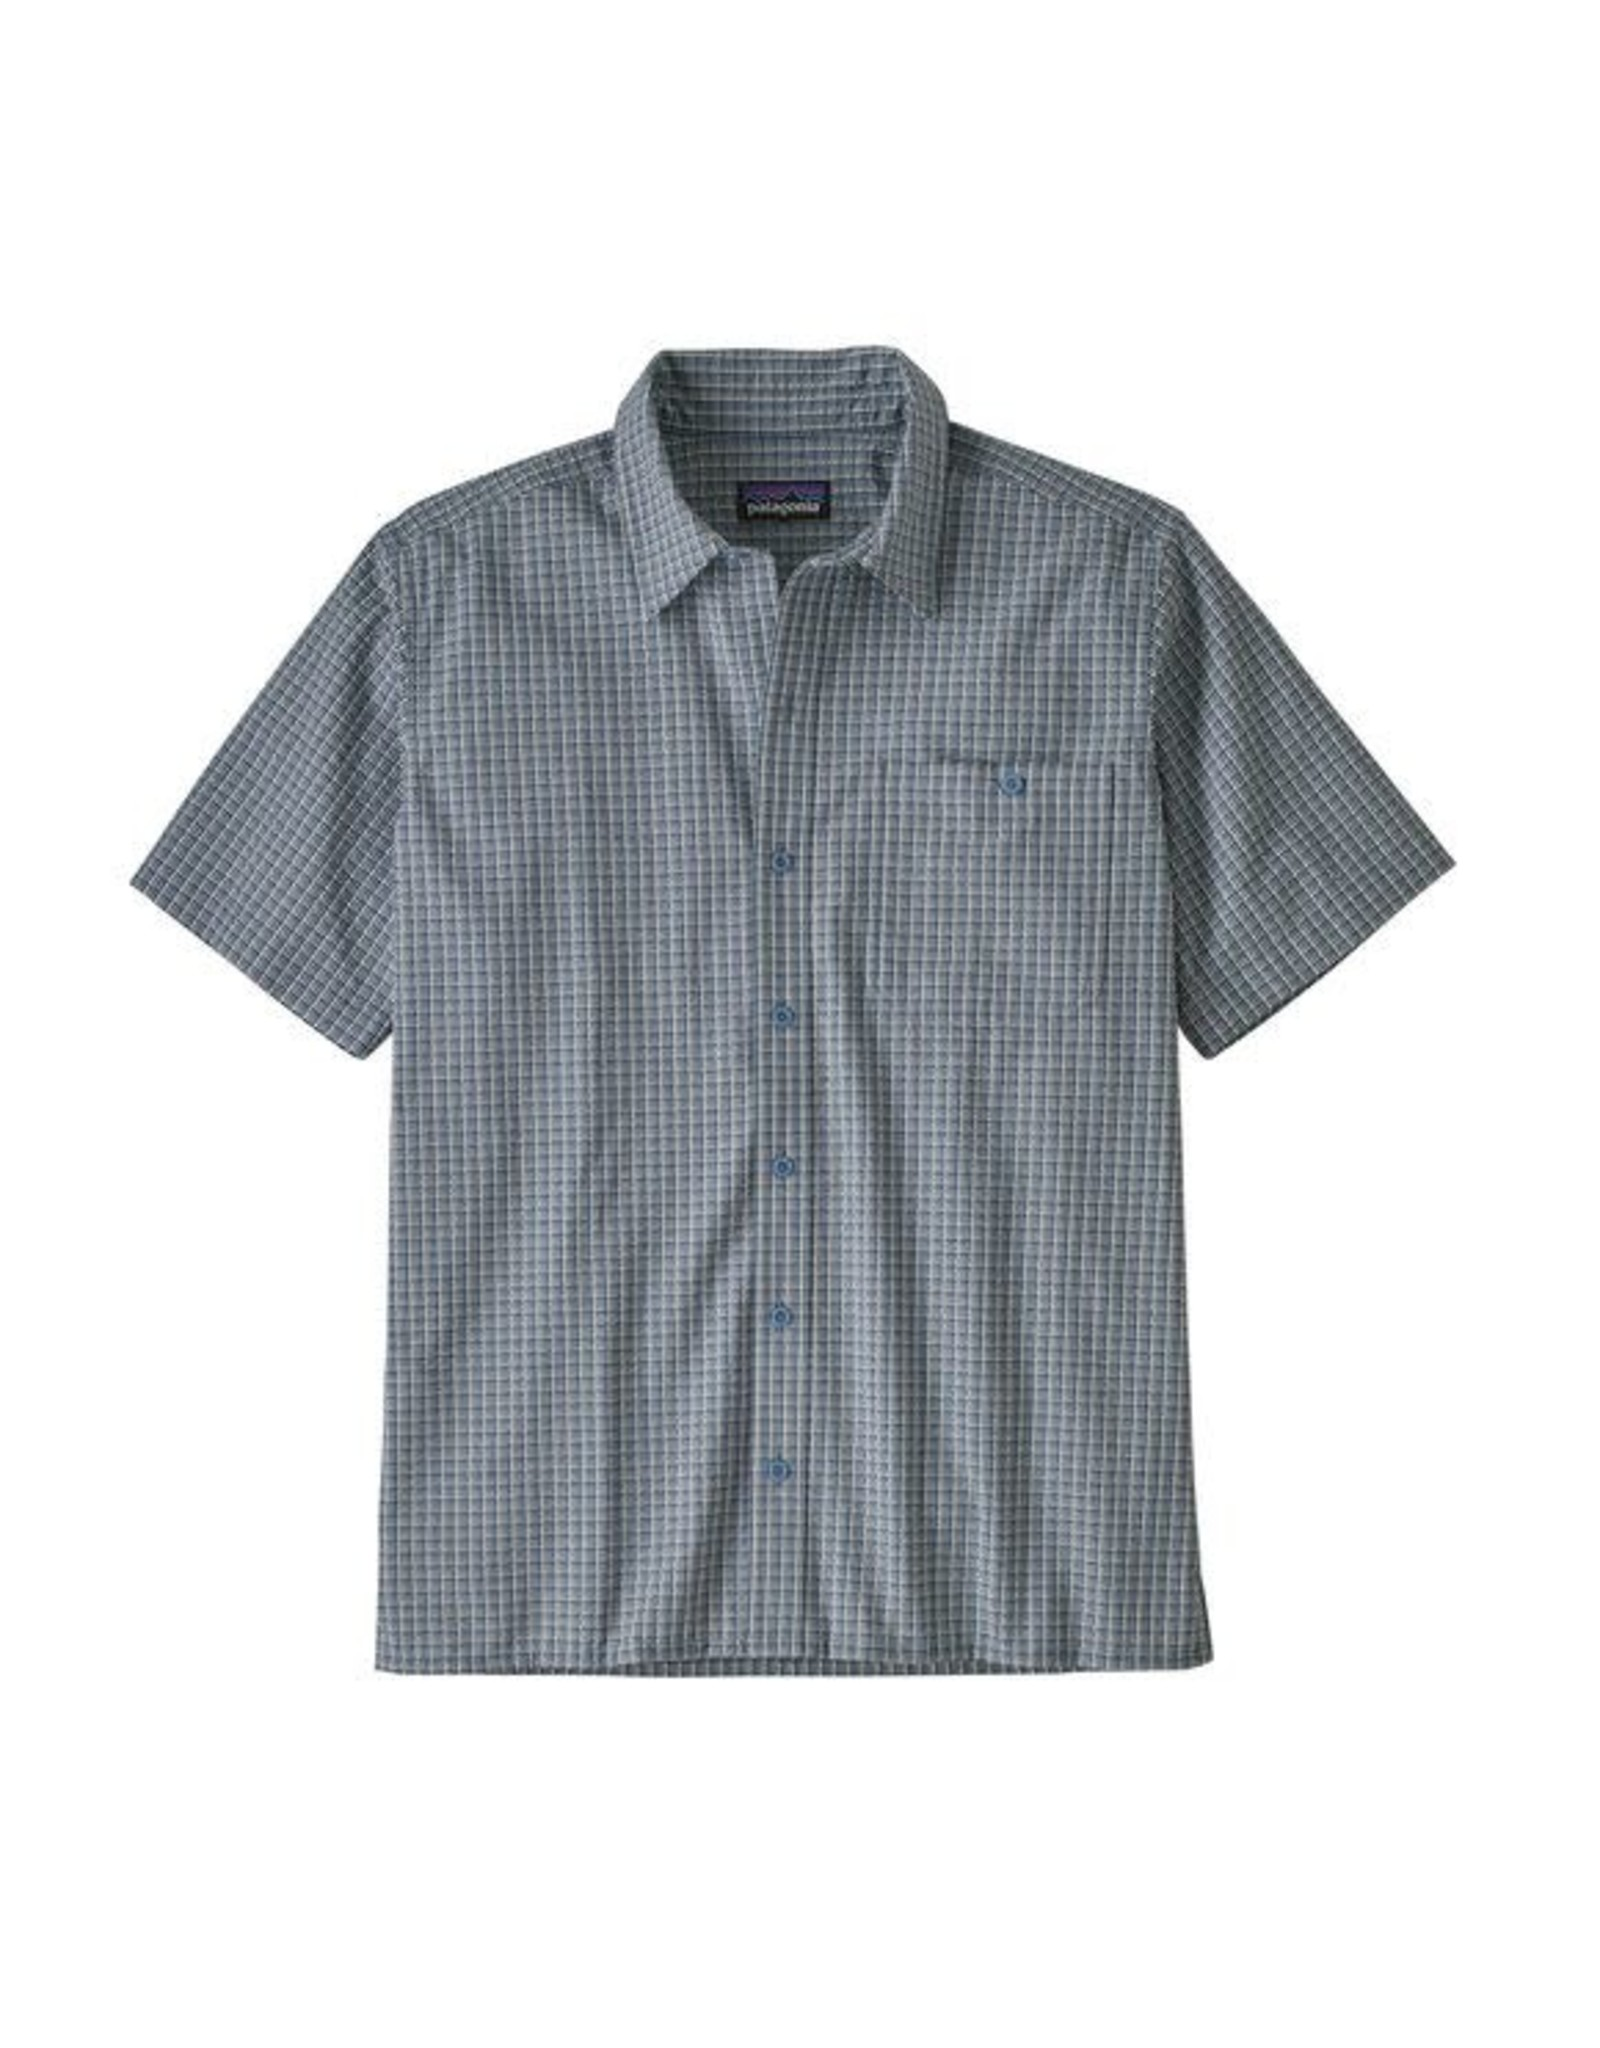 Patagonia M's Puckerware Shirt